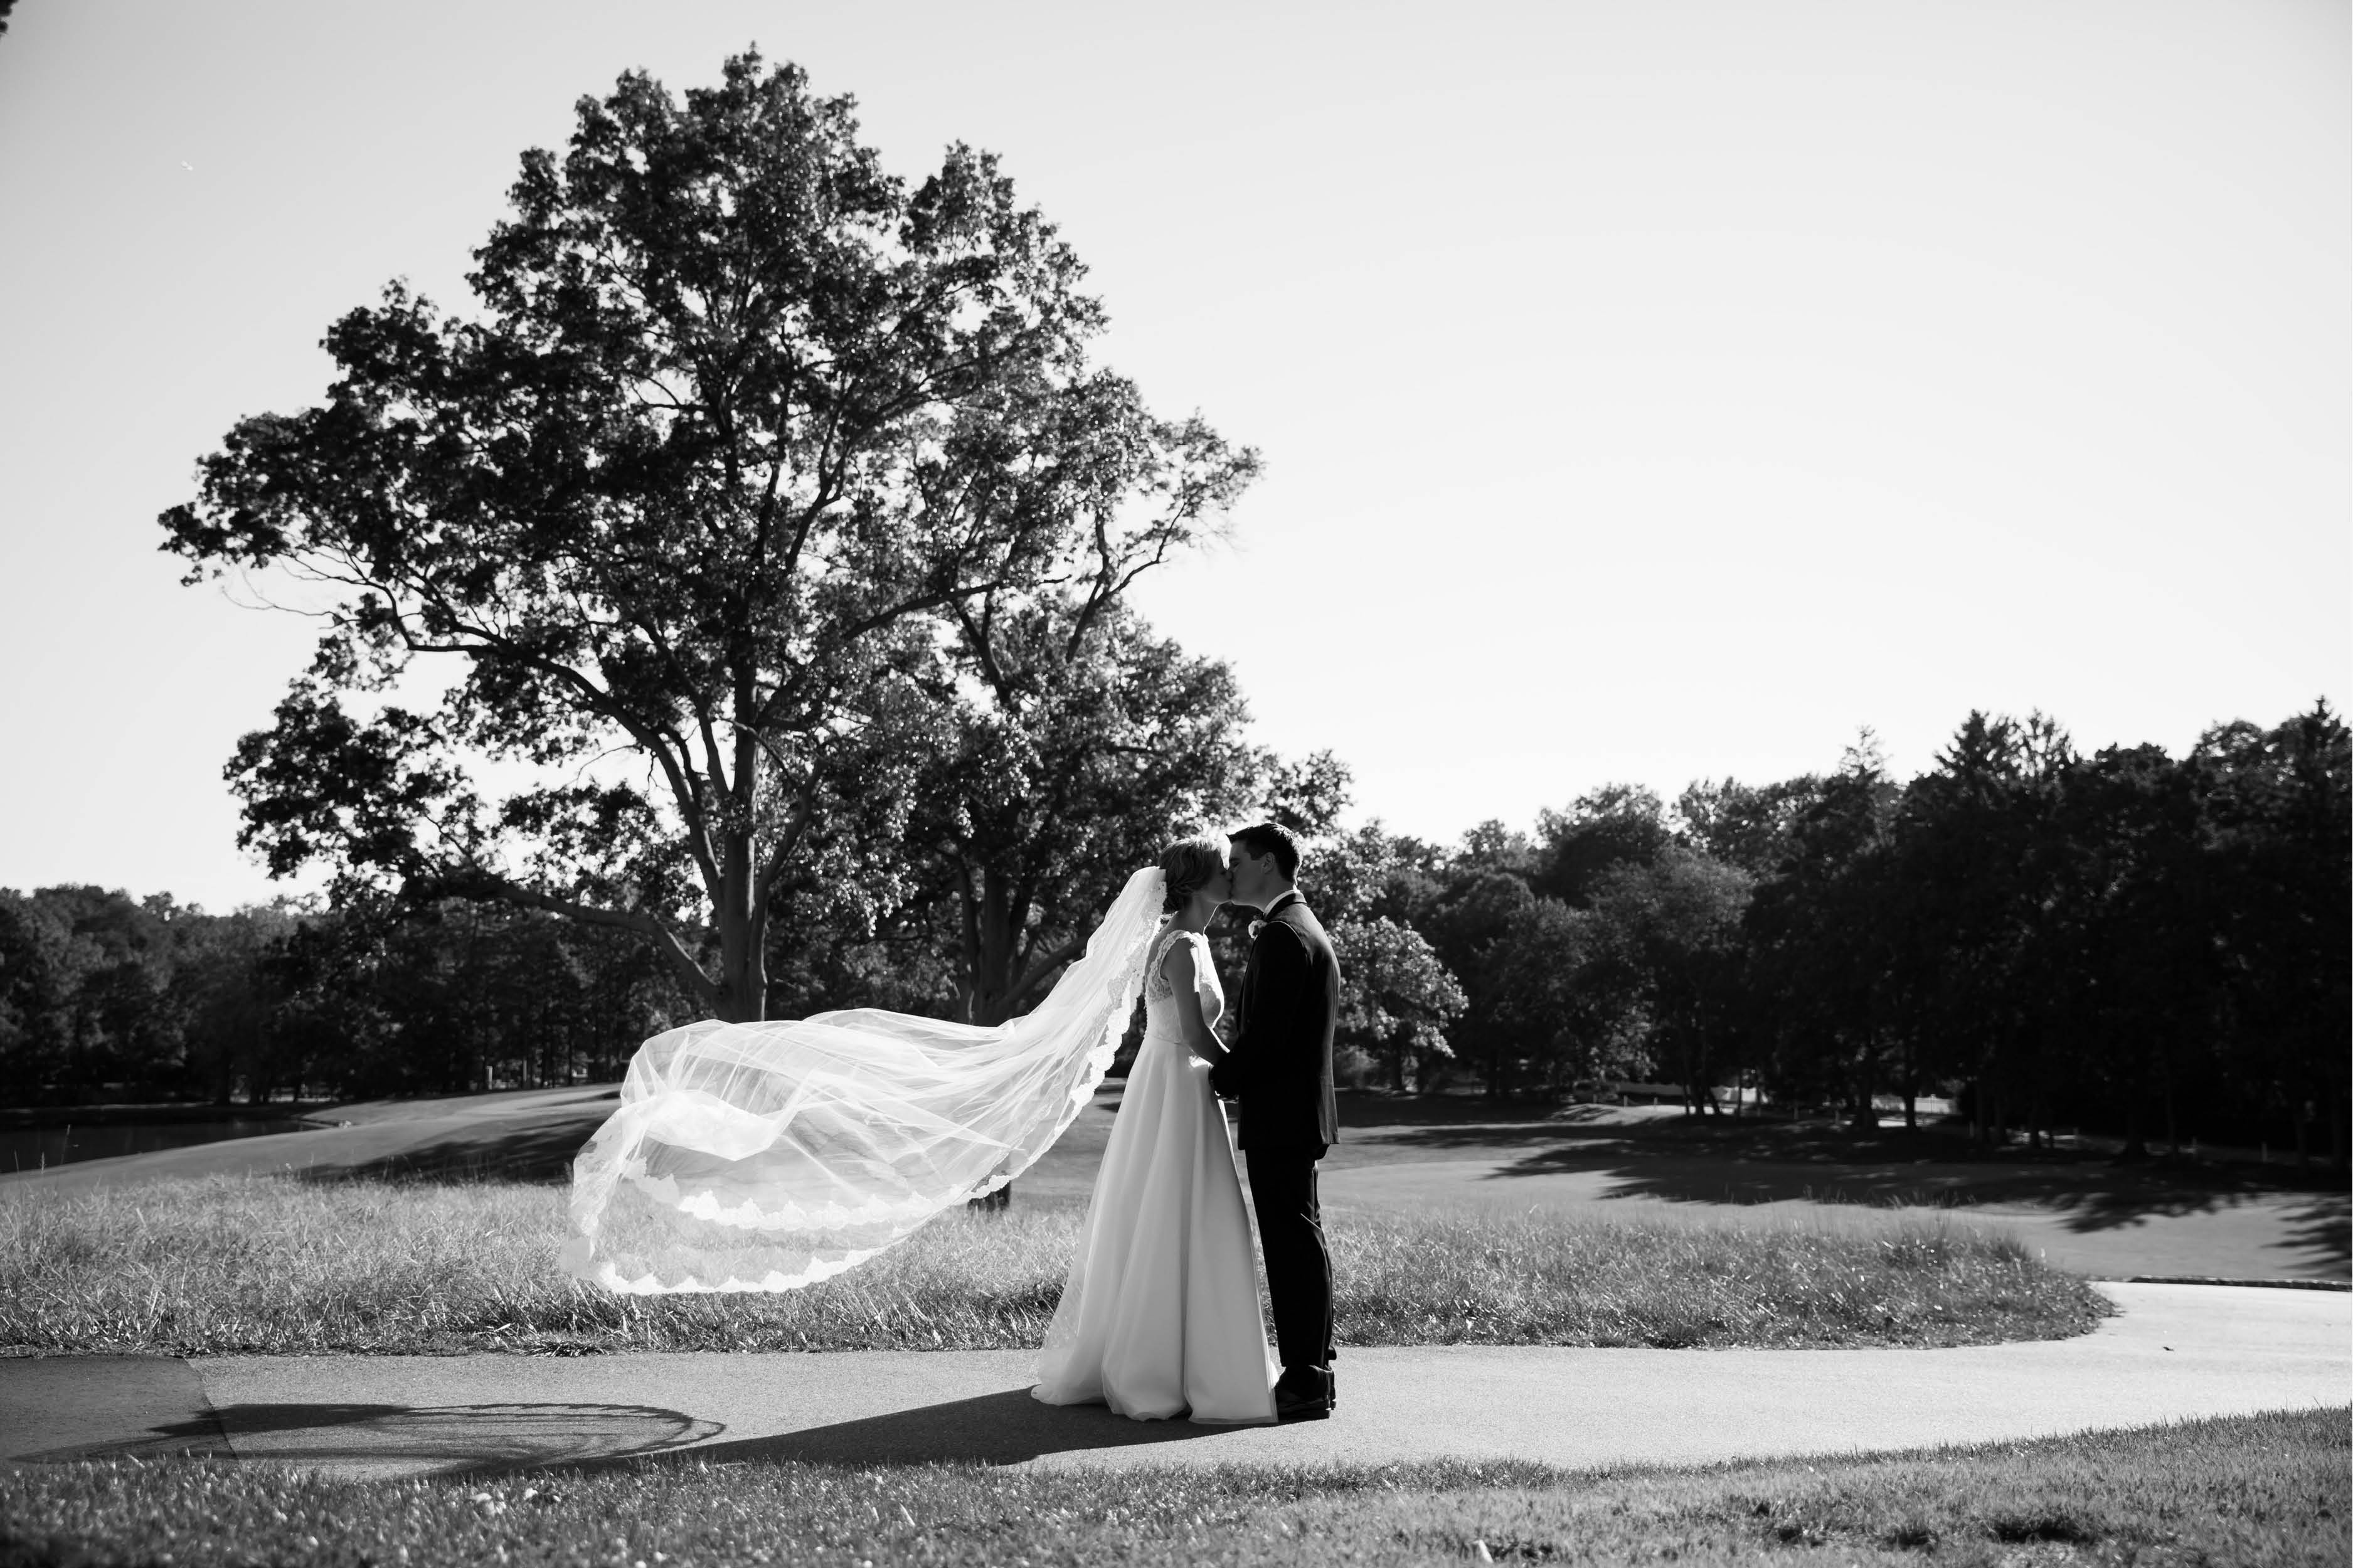 Emma_cleary_ photography_ wedding11